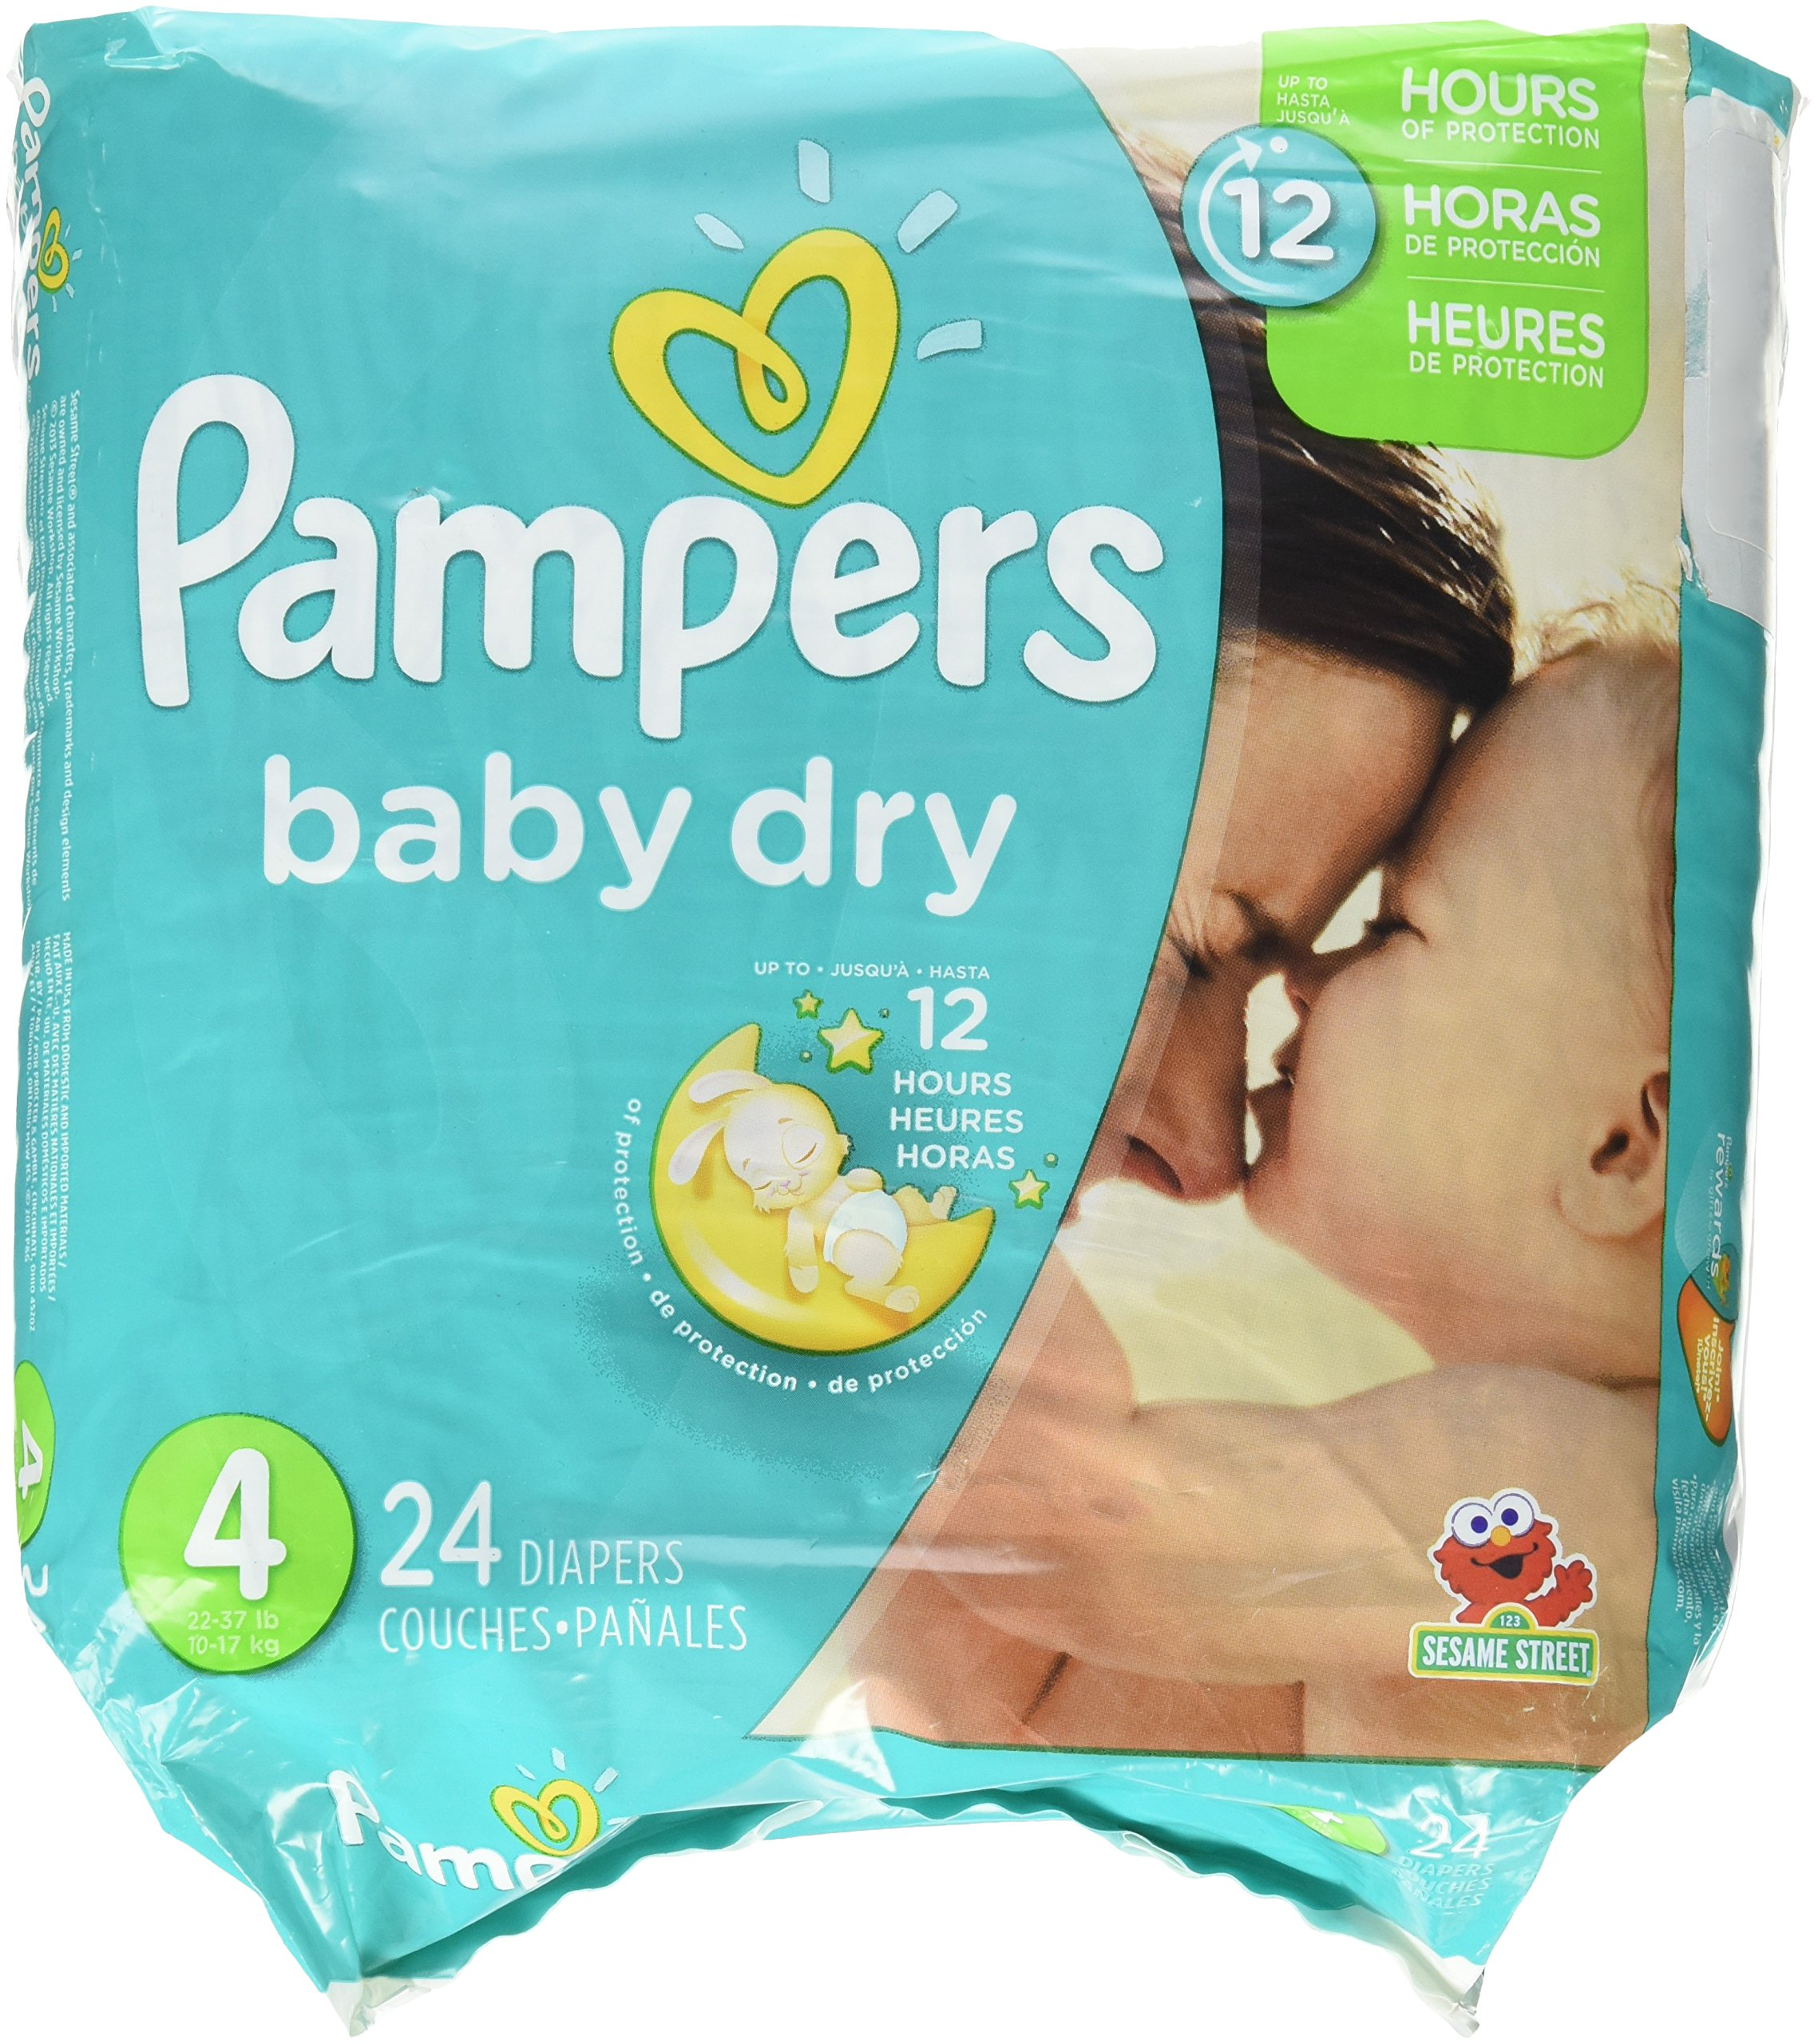 Pampers Baby Dry Diapers - Size 4 - 24 ct by Pampers